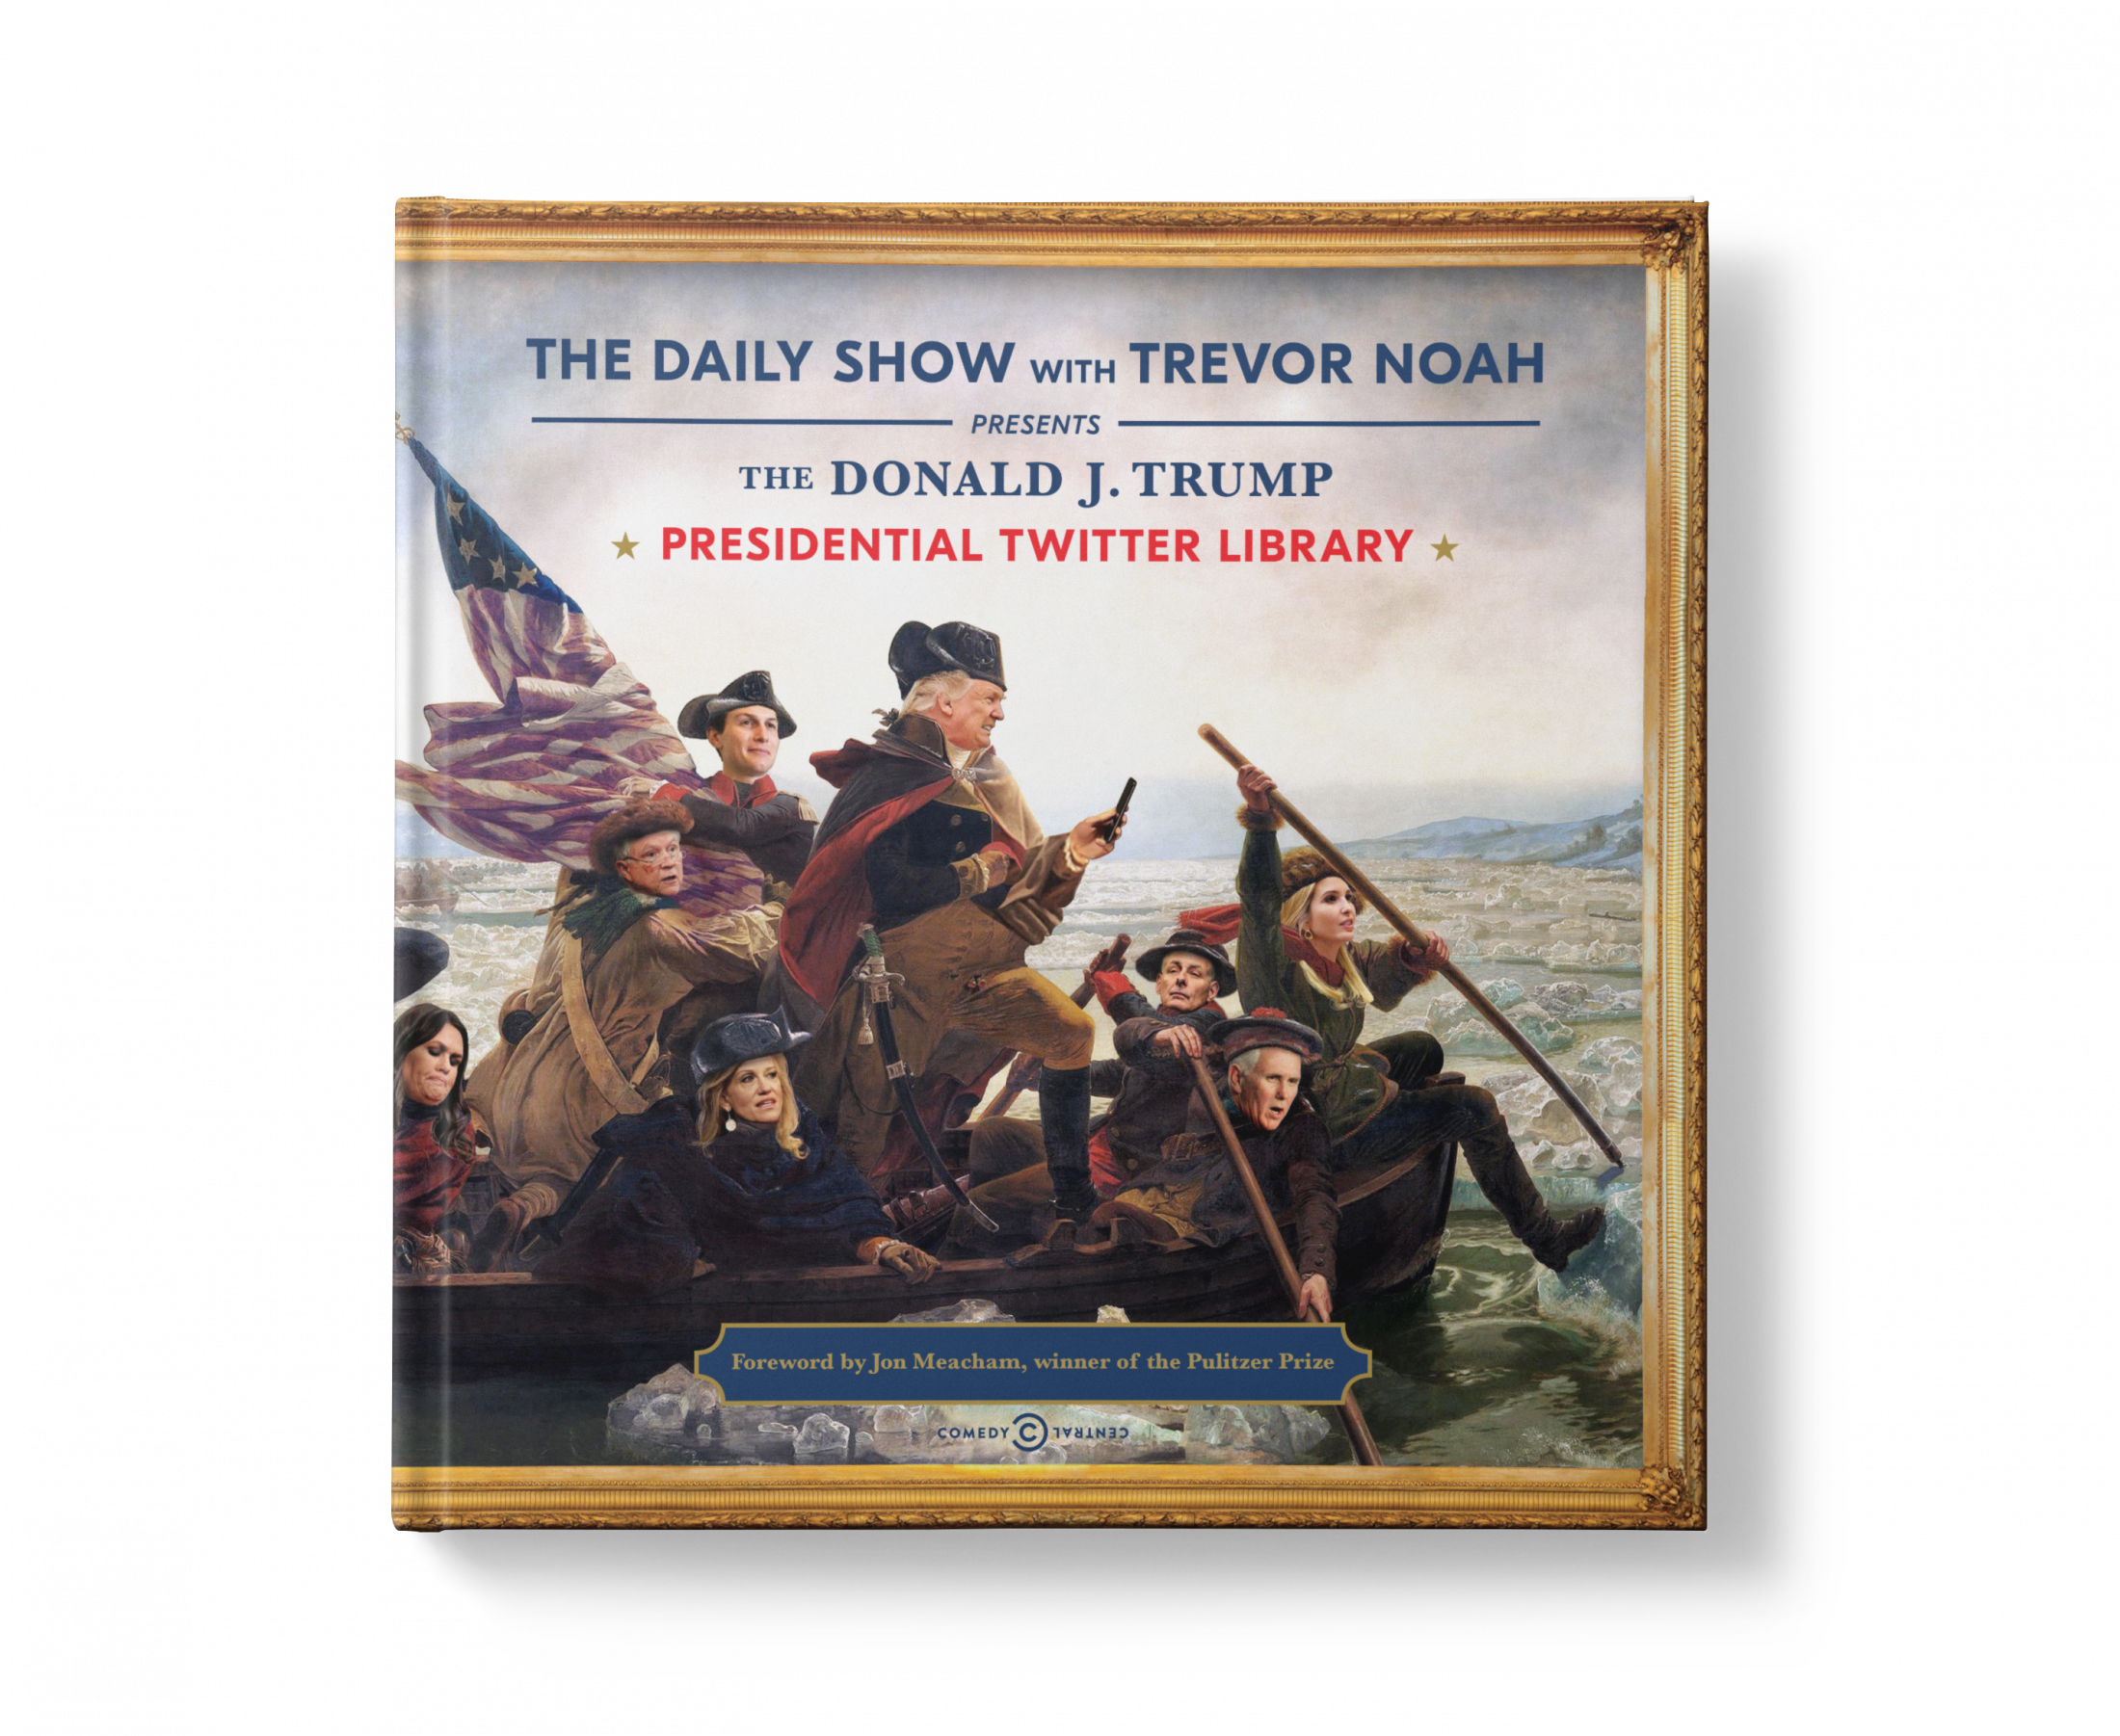 Thumbnail for The Daily Show with Trevor Noah Presents: The Donald J. Trump Presidential Twitter Library Book